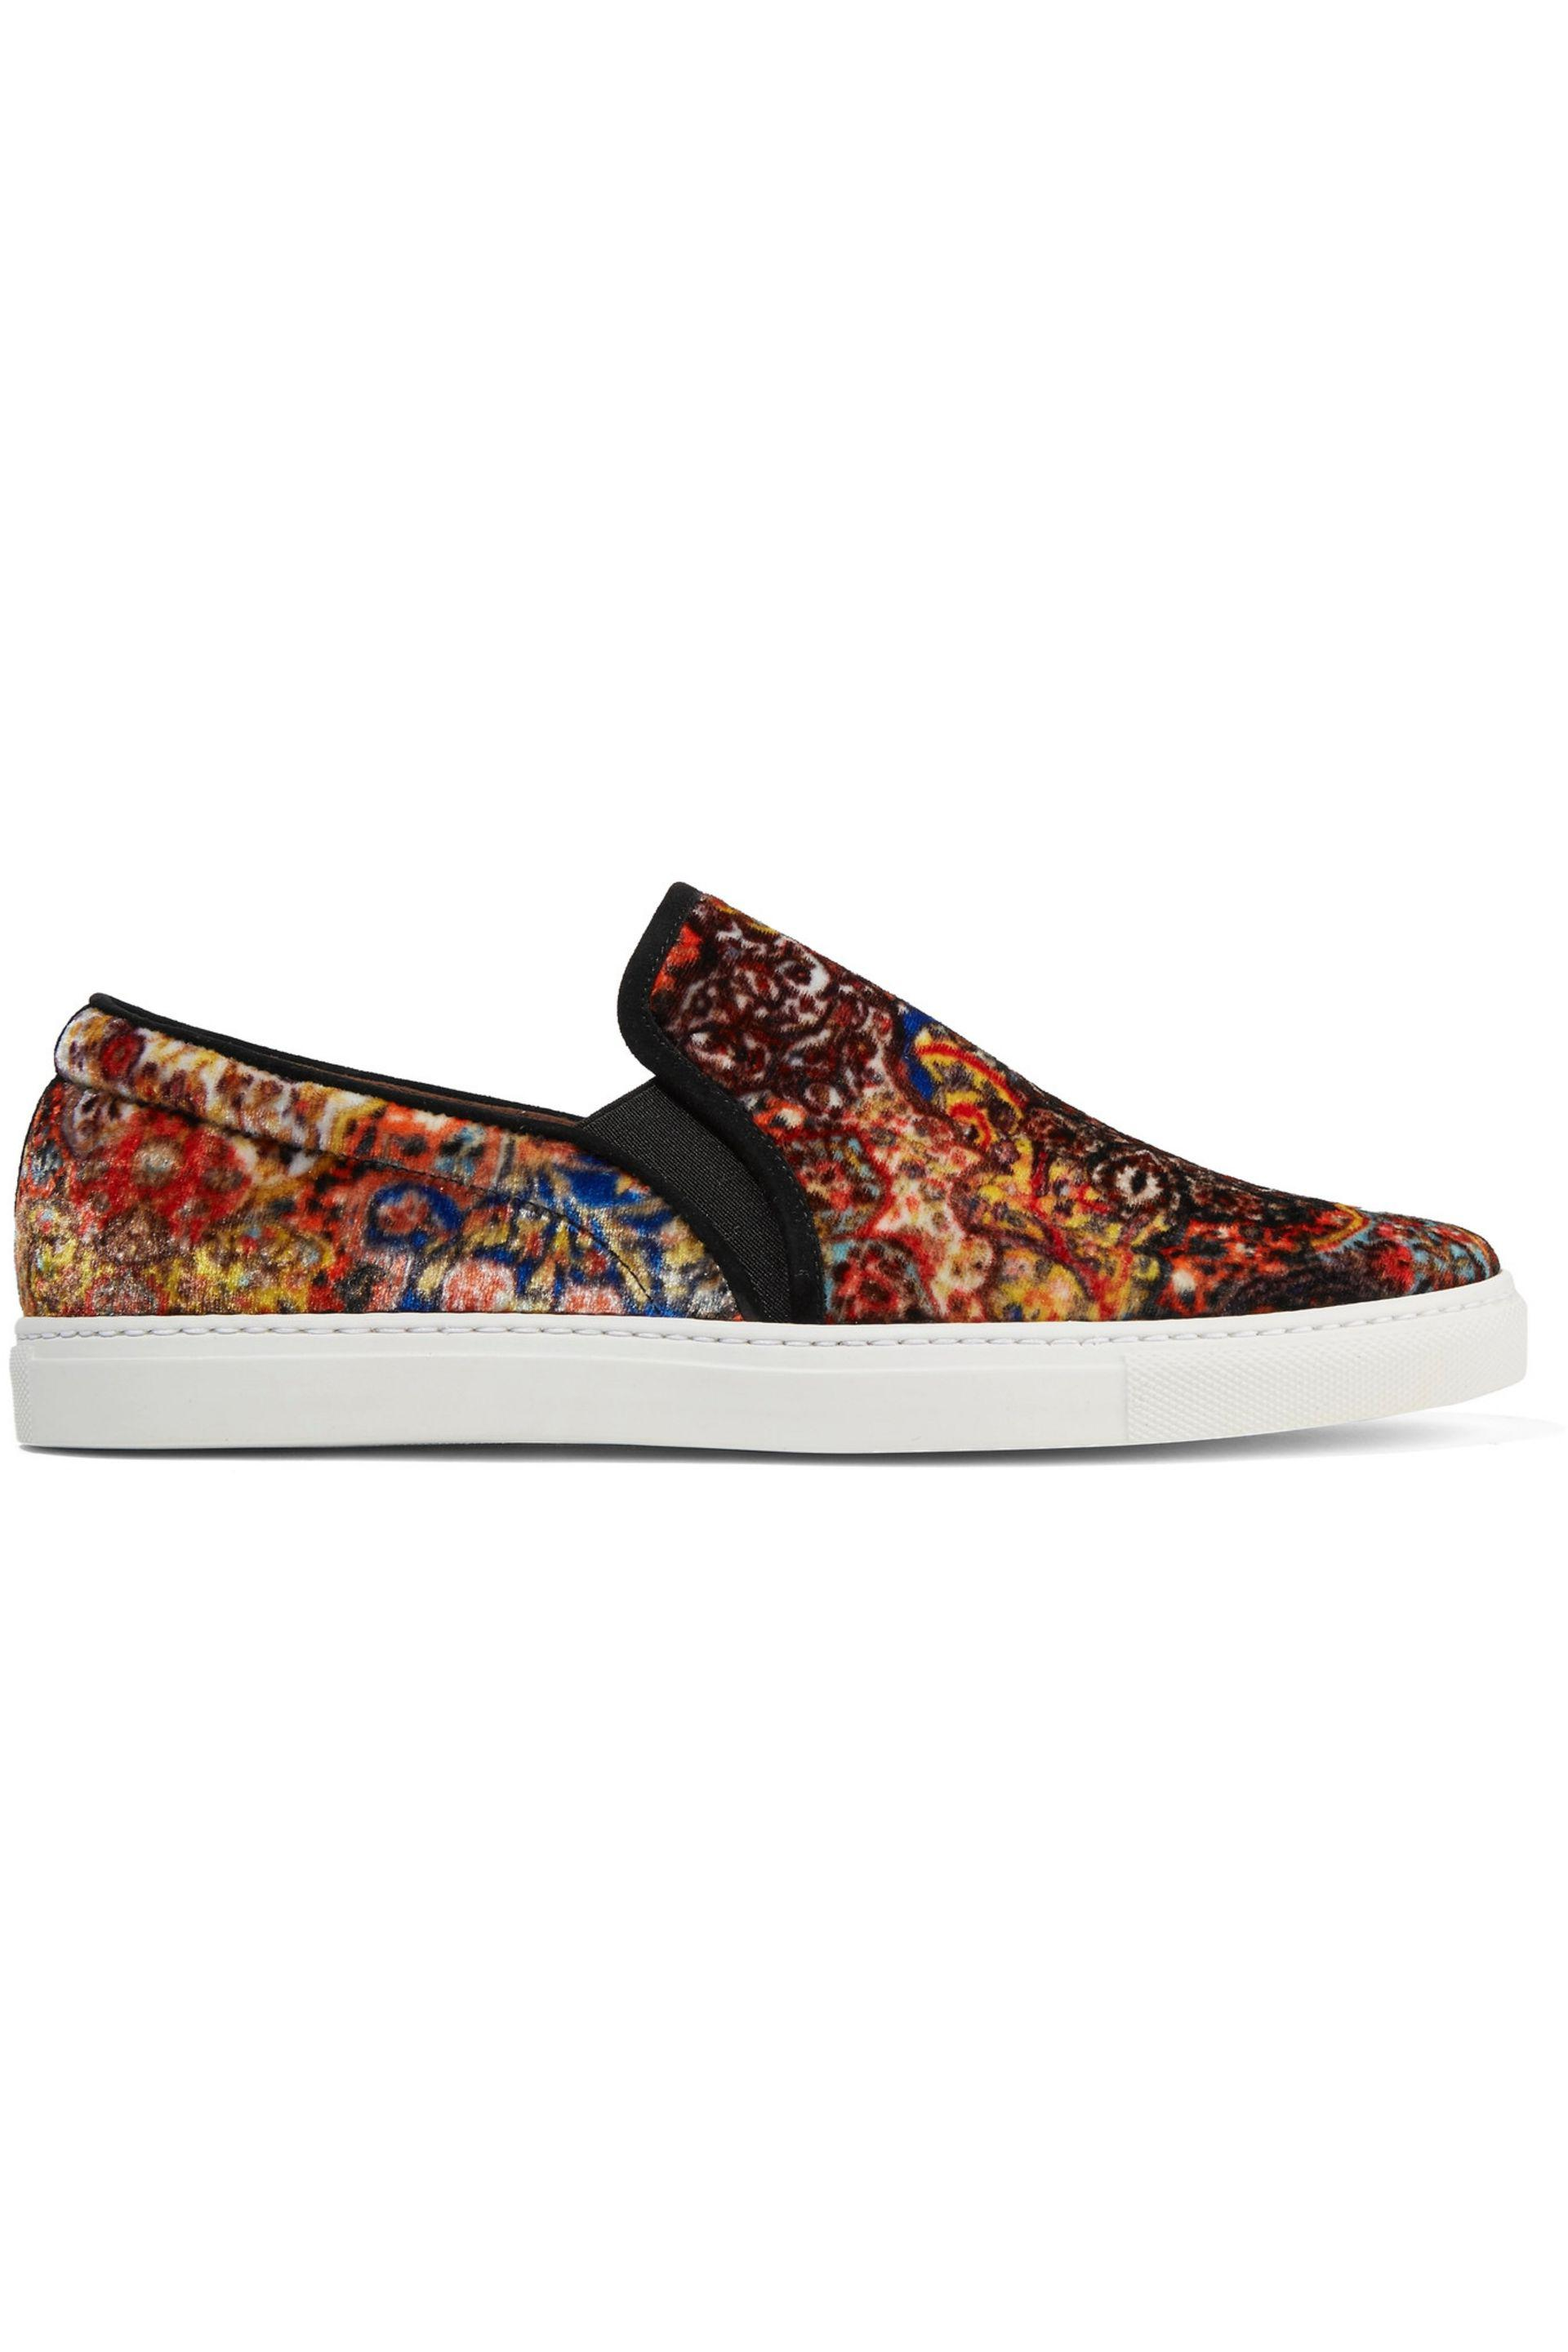 Huntington slip-on sneakers - Multicolour Tabitha Simmons iZc1sJpL